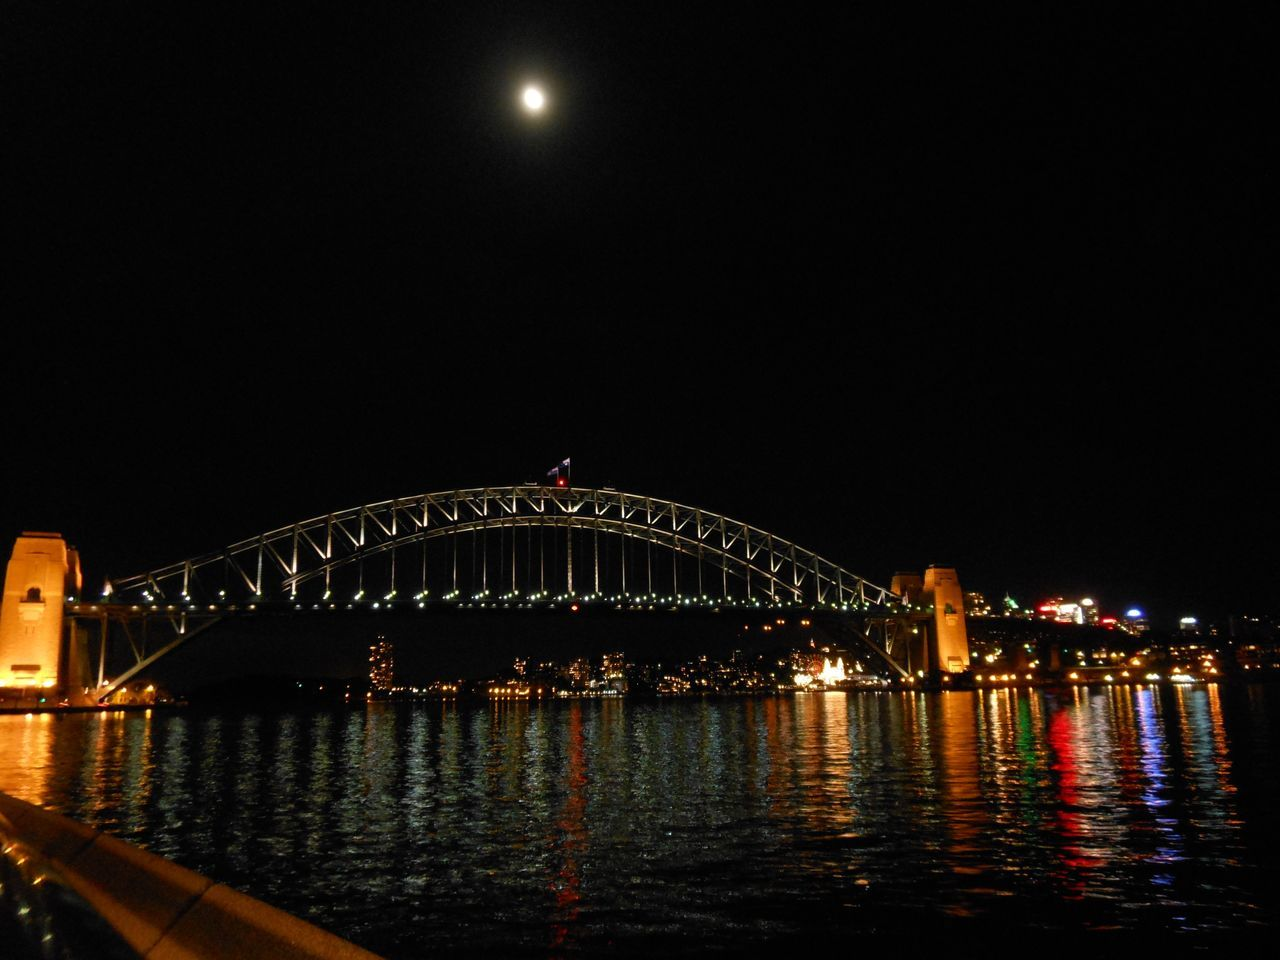 Sydney Harbour Bridge at night Architecture Black Water Bridge Bridge - Man Made Structure City City Trip Citylife Citylights Colourful Dark Darkness And Light Evening Walk Illuminated Lights In The Dark Mirroring In Water Moon Night No People Outdoors Sydney Harbour Bridge Sydney, Australia Tranquil Scene Travel Destinations Travelling Waterfront